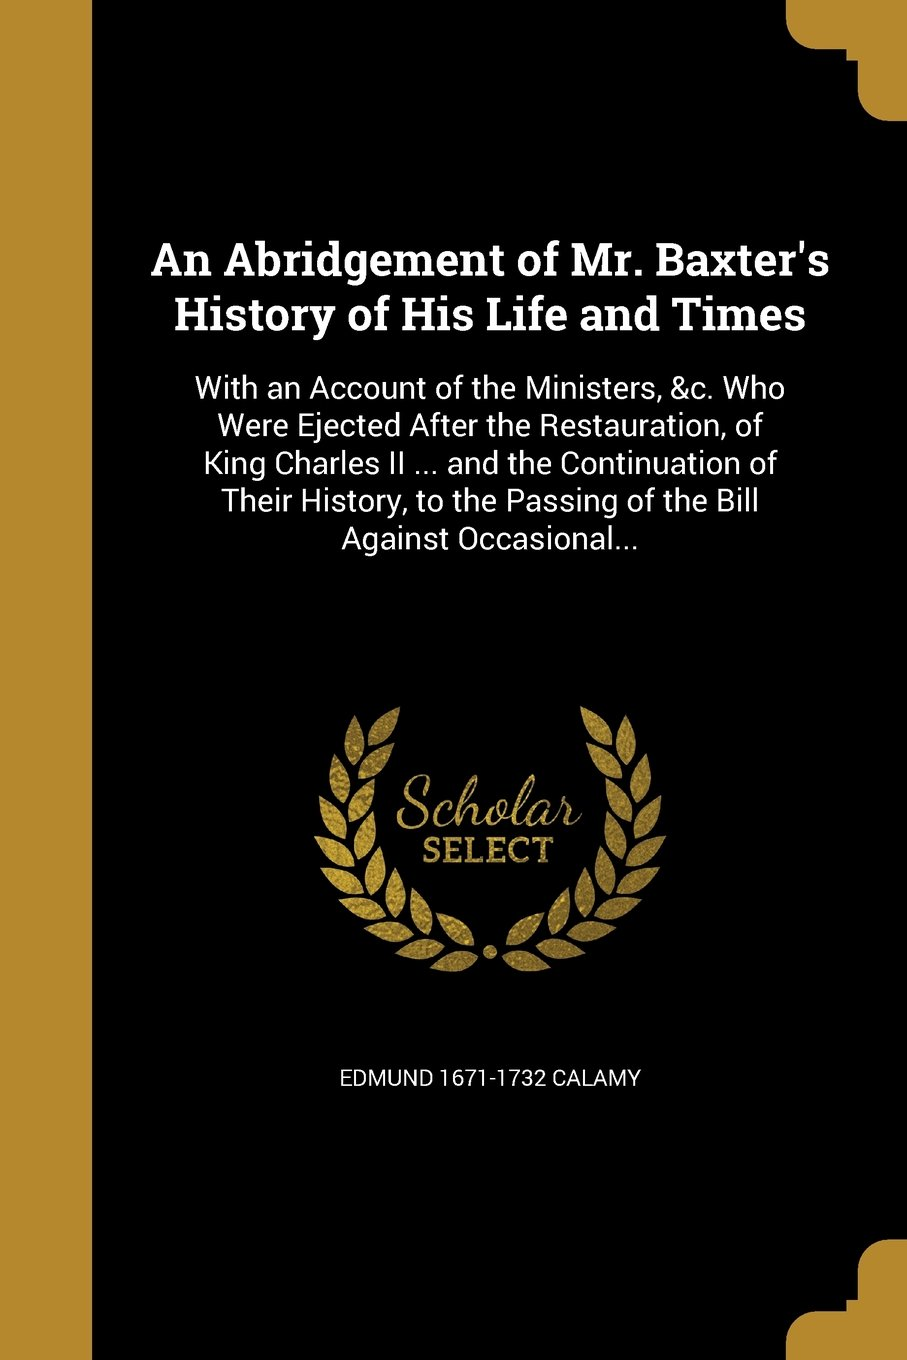 Download An Abridgement of Mr. Baxter's History of His Life and Times: With an Account of the Ministers, &C. Who Were Ejected After the Restauration, of King ... the Passing of the Bill Against Occasional... pdf epub